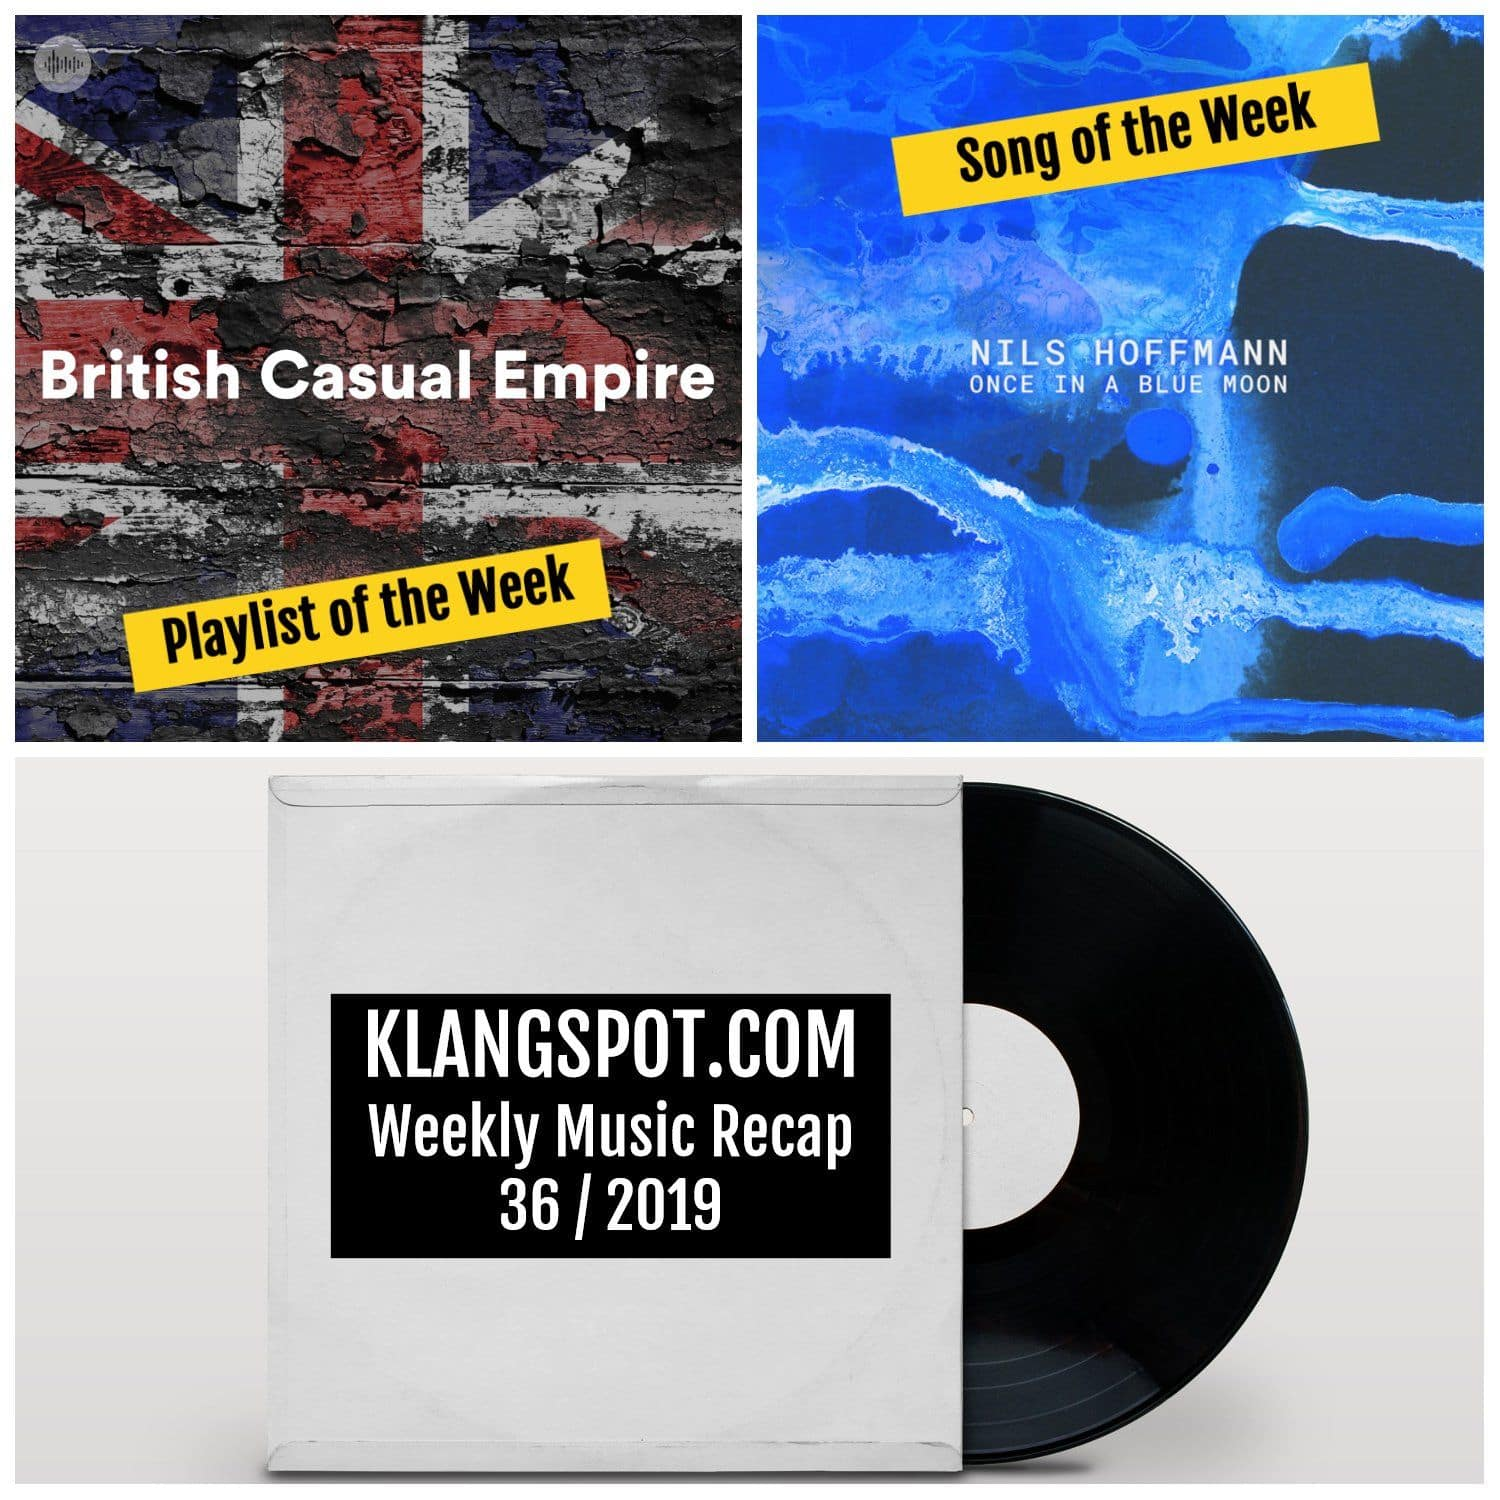 Weekly Music Recap 36/2019: British Casual Empire / Nils Hoffmann - 'Once in a Blue Moon'